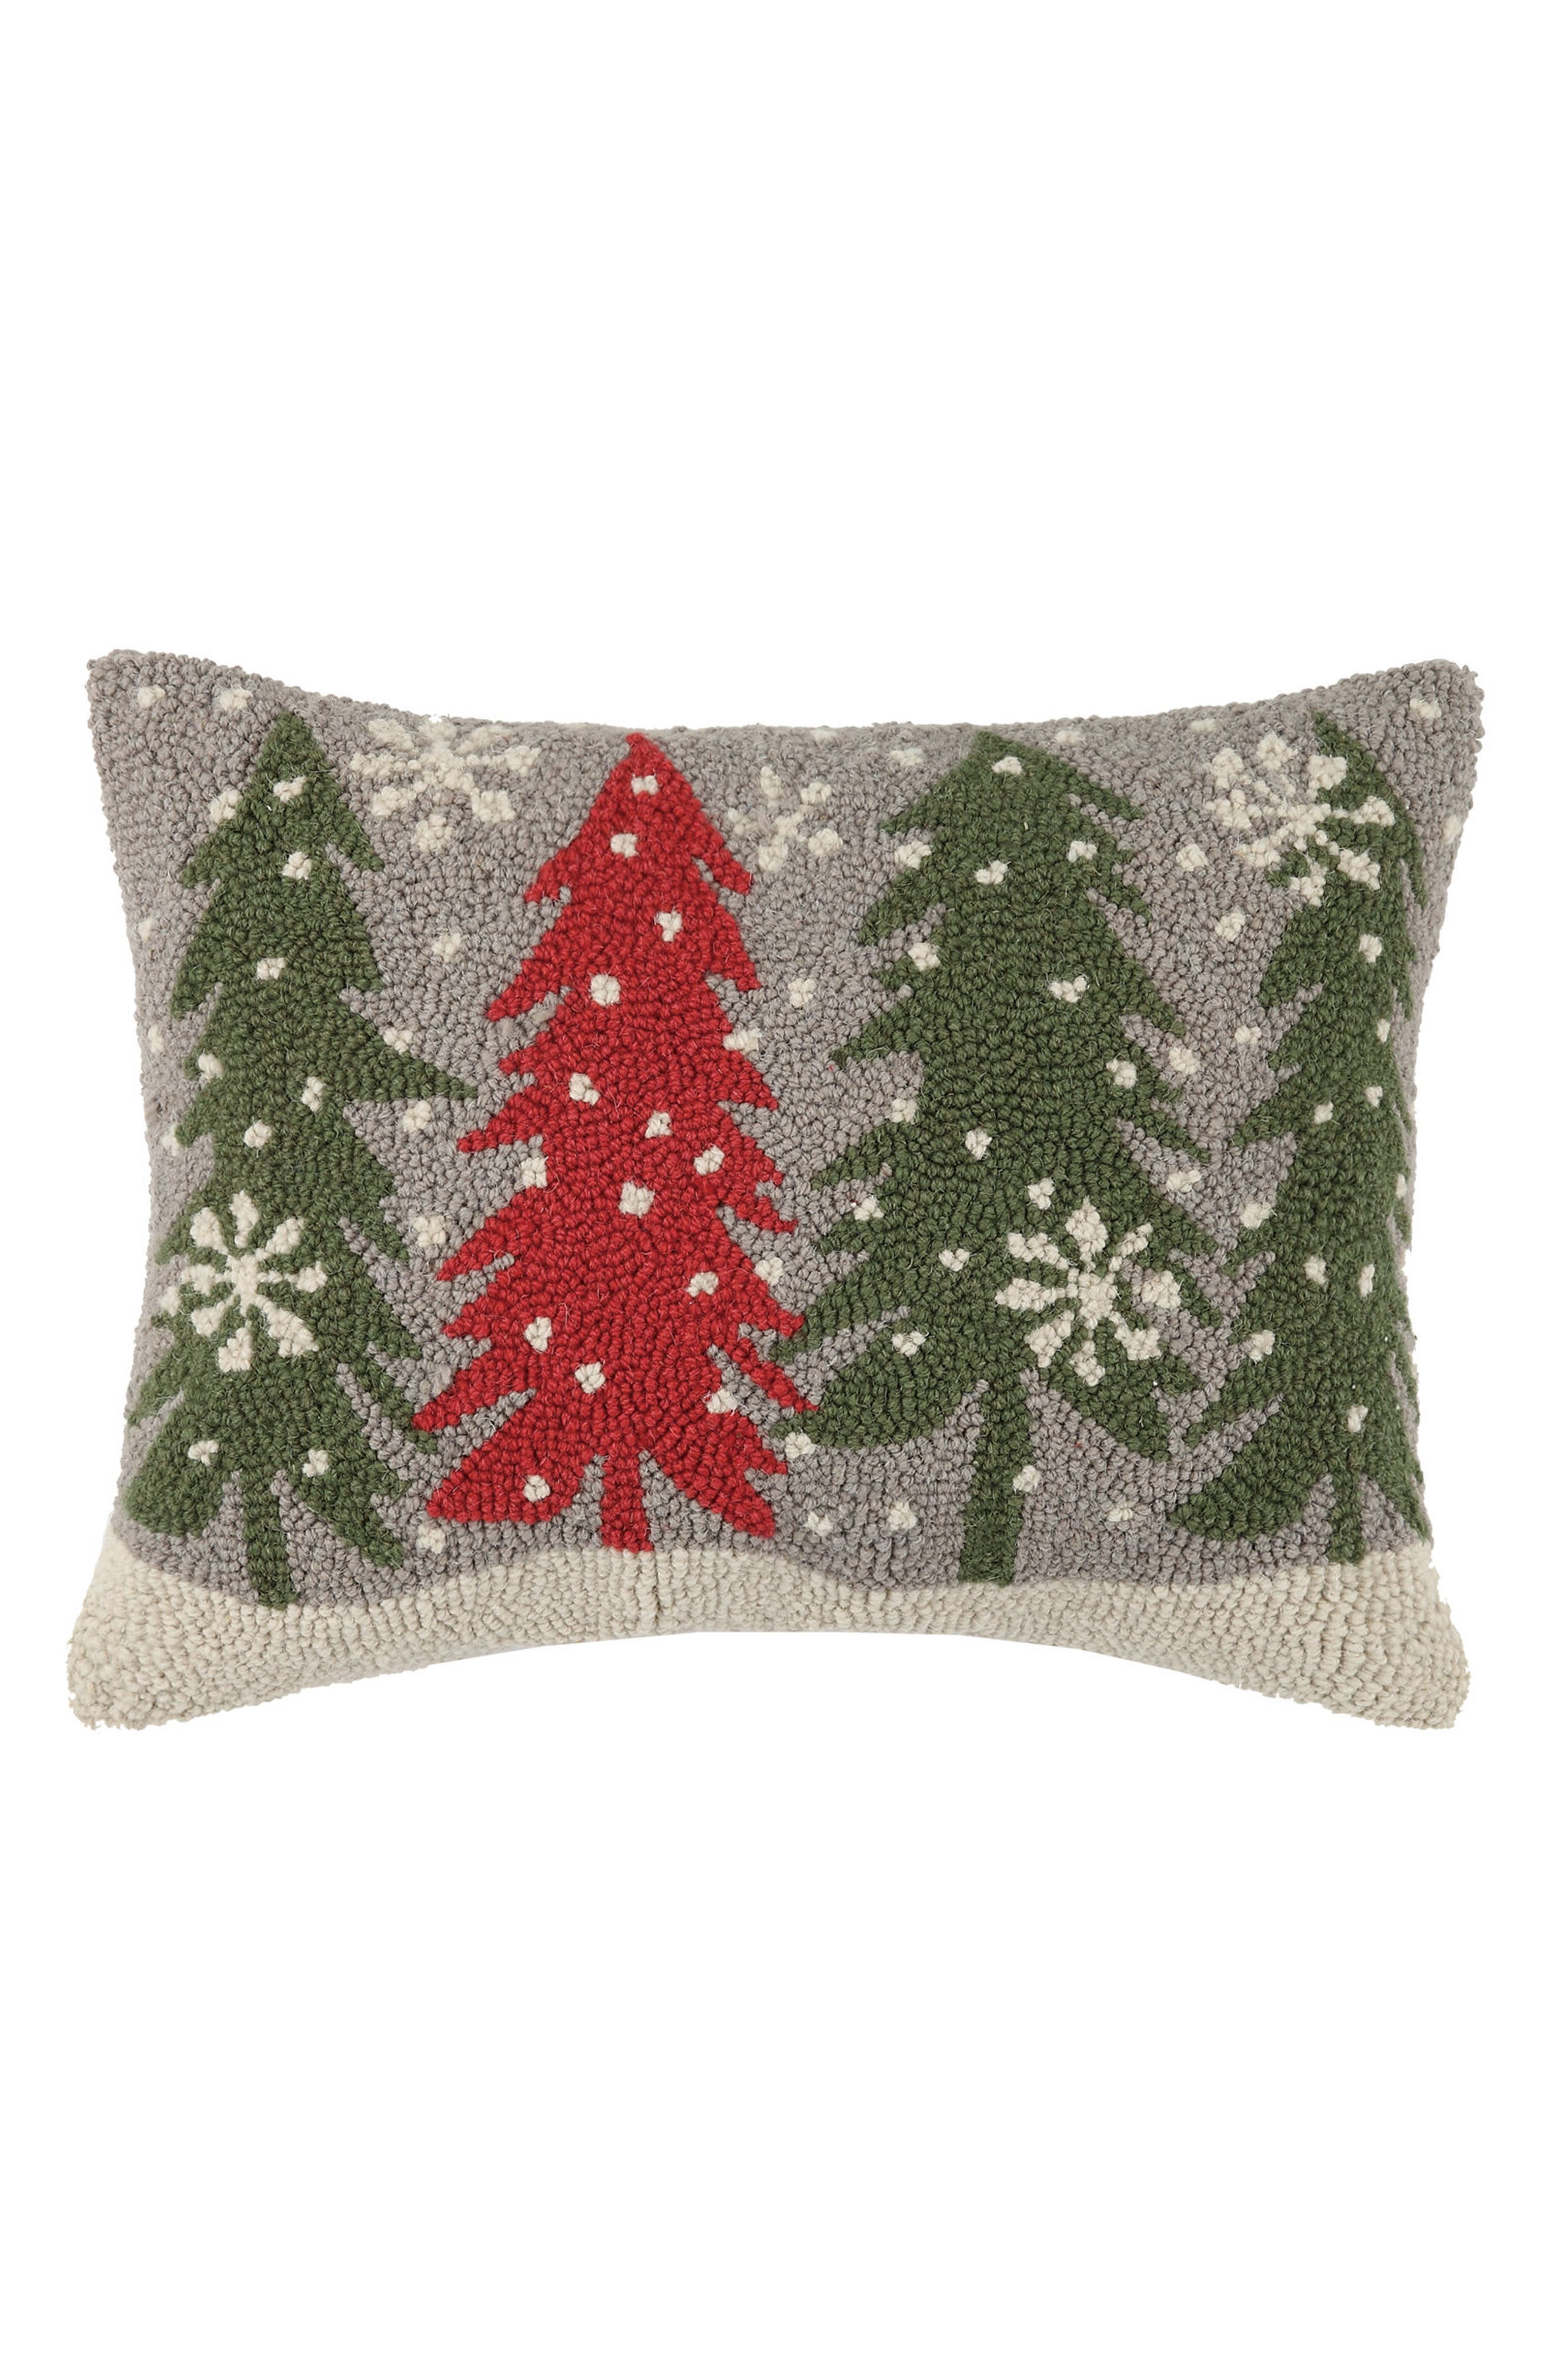 Trees with Snowflakes Hooked Accent Pillow,                         Main,                         color, Grey